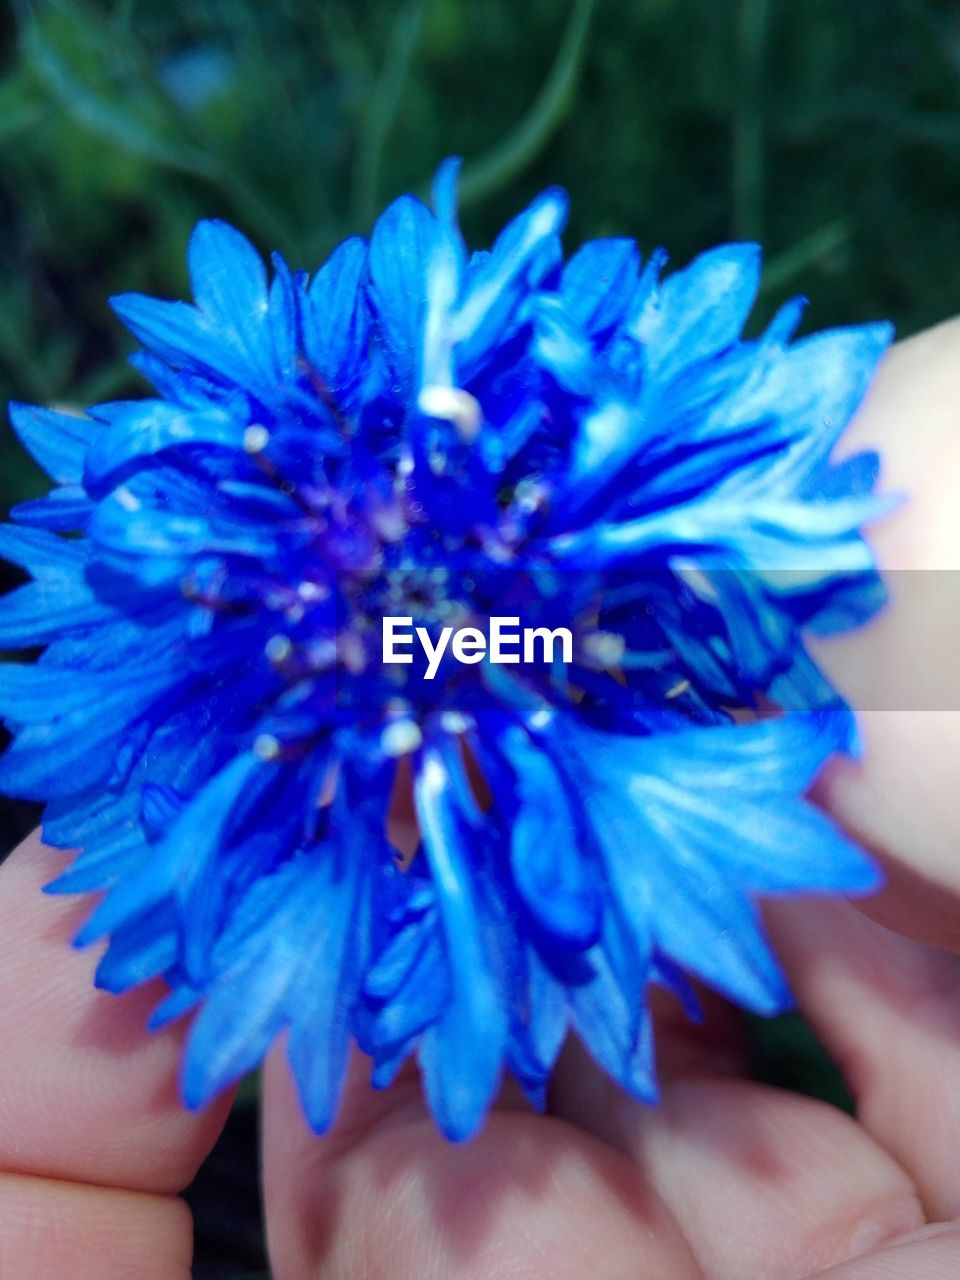 human hand, hand, human body part, blue, real people, flower, one person, close-up, flowering plant, plant, fragility, vulnerability, lifestyles, holding, body part, beauty in nature, freshness, day, unrecognizable person, focus on foreground, purple, flower head, finger, outdoors, human limb